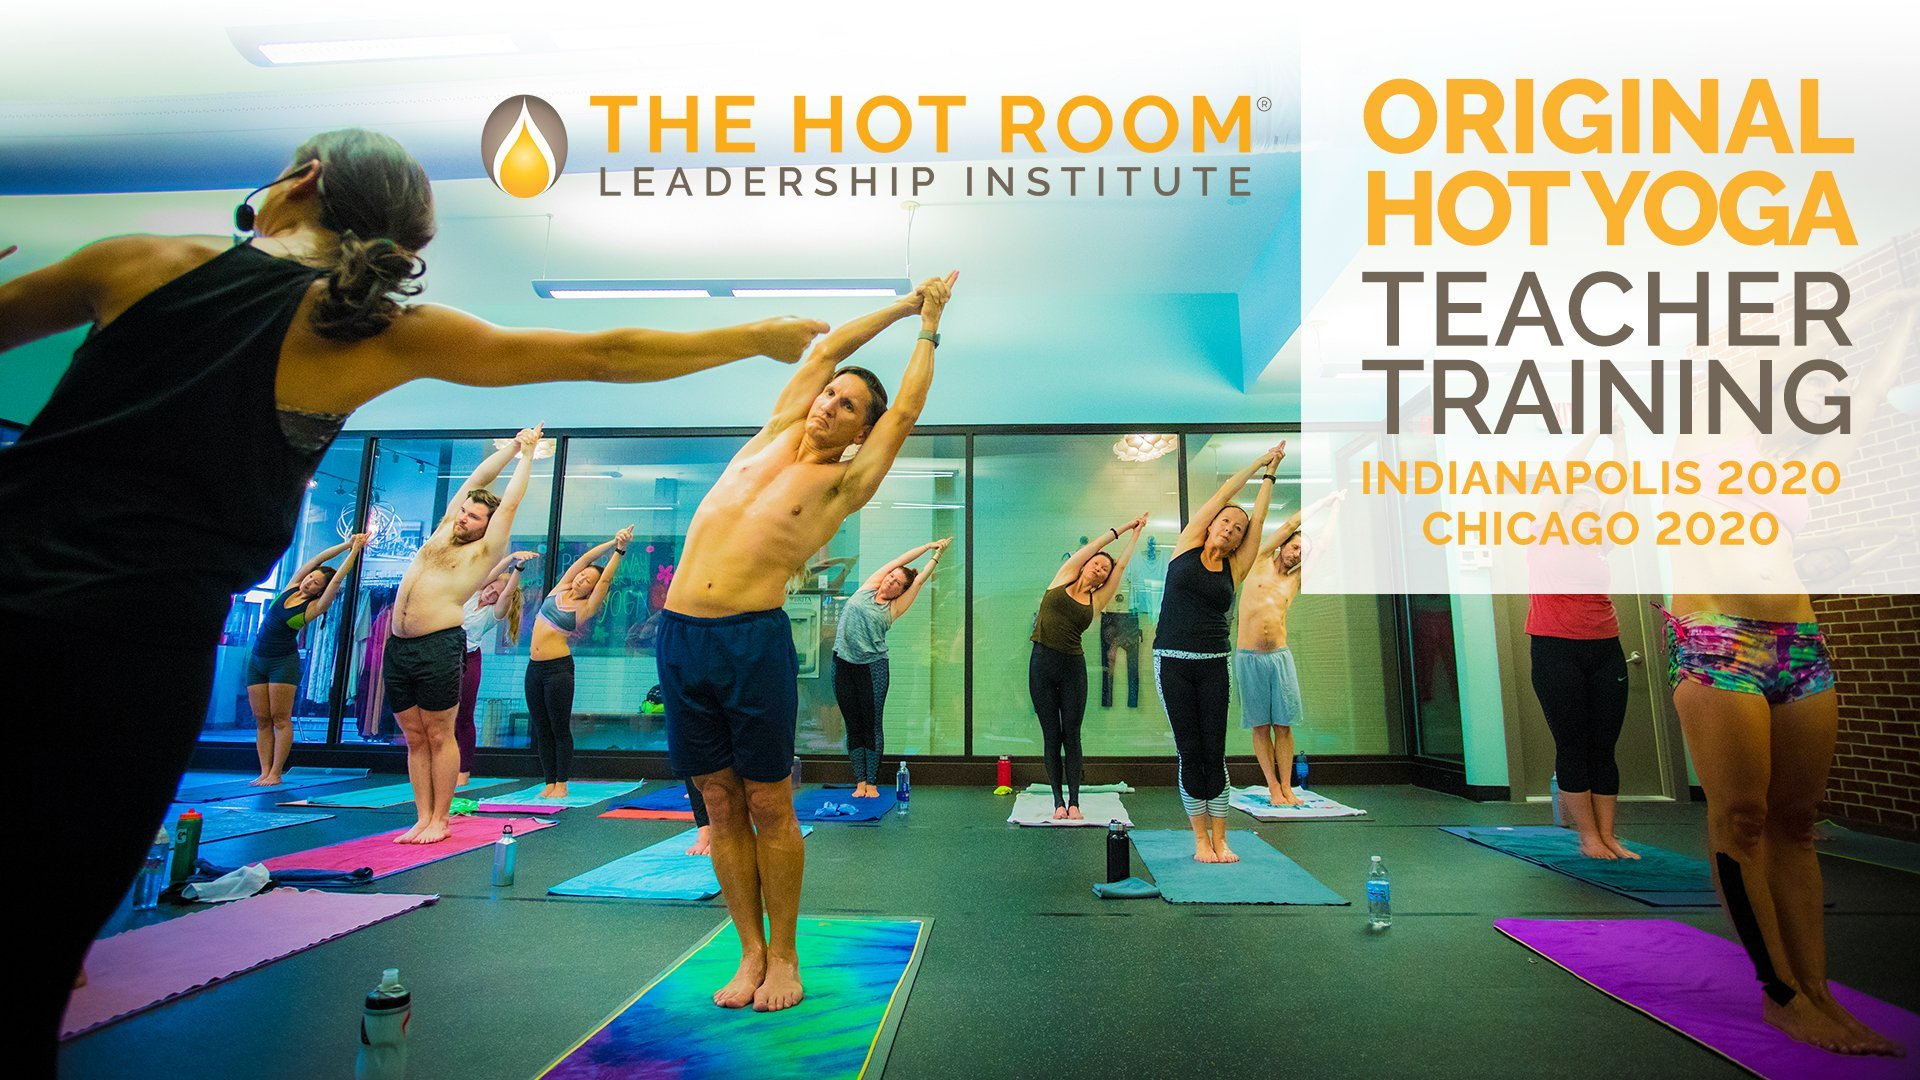 Original Hot Yoga Teacher Training Thehotroom Com